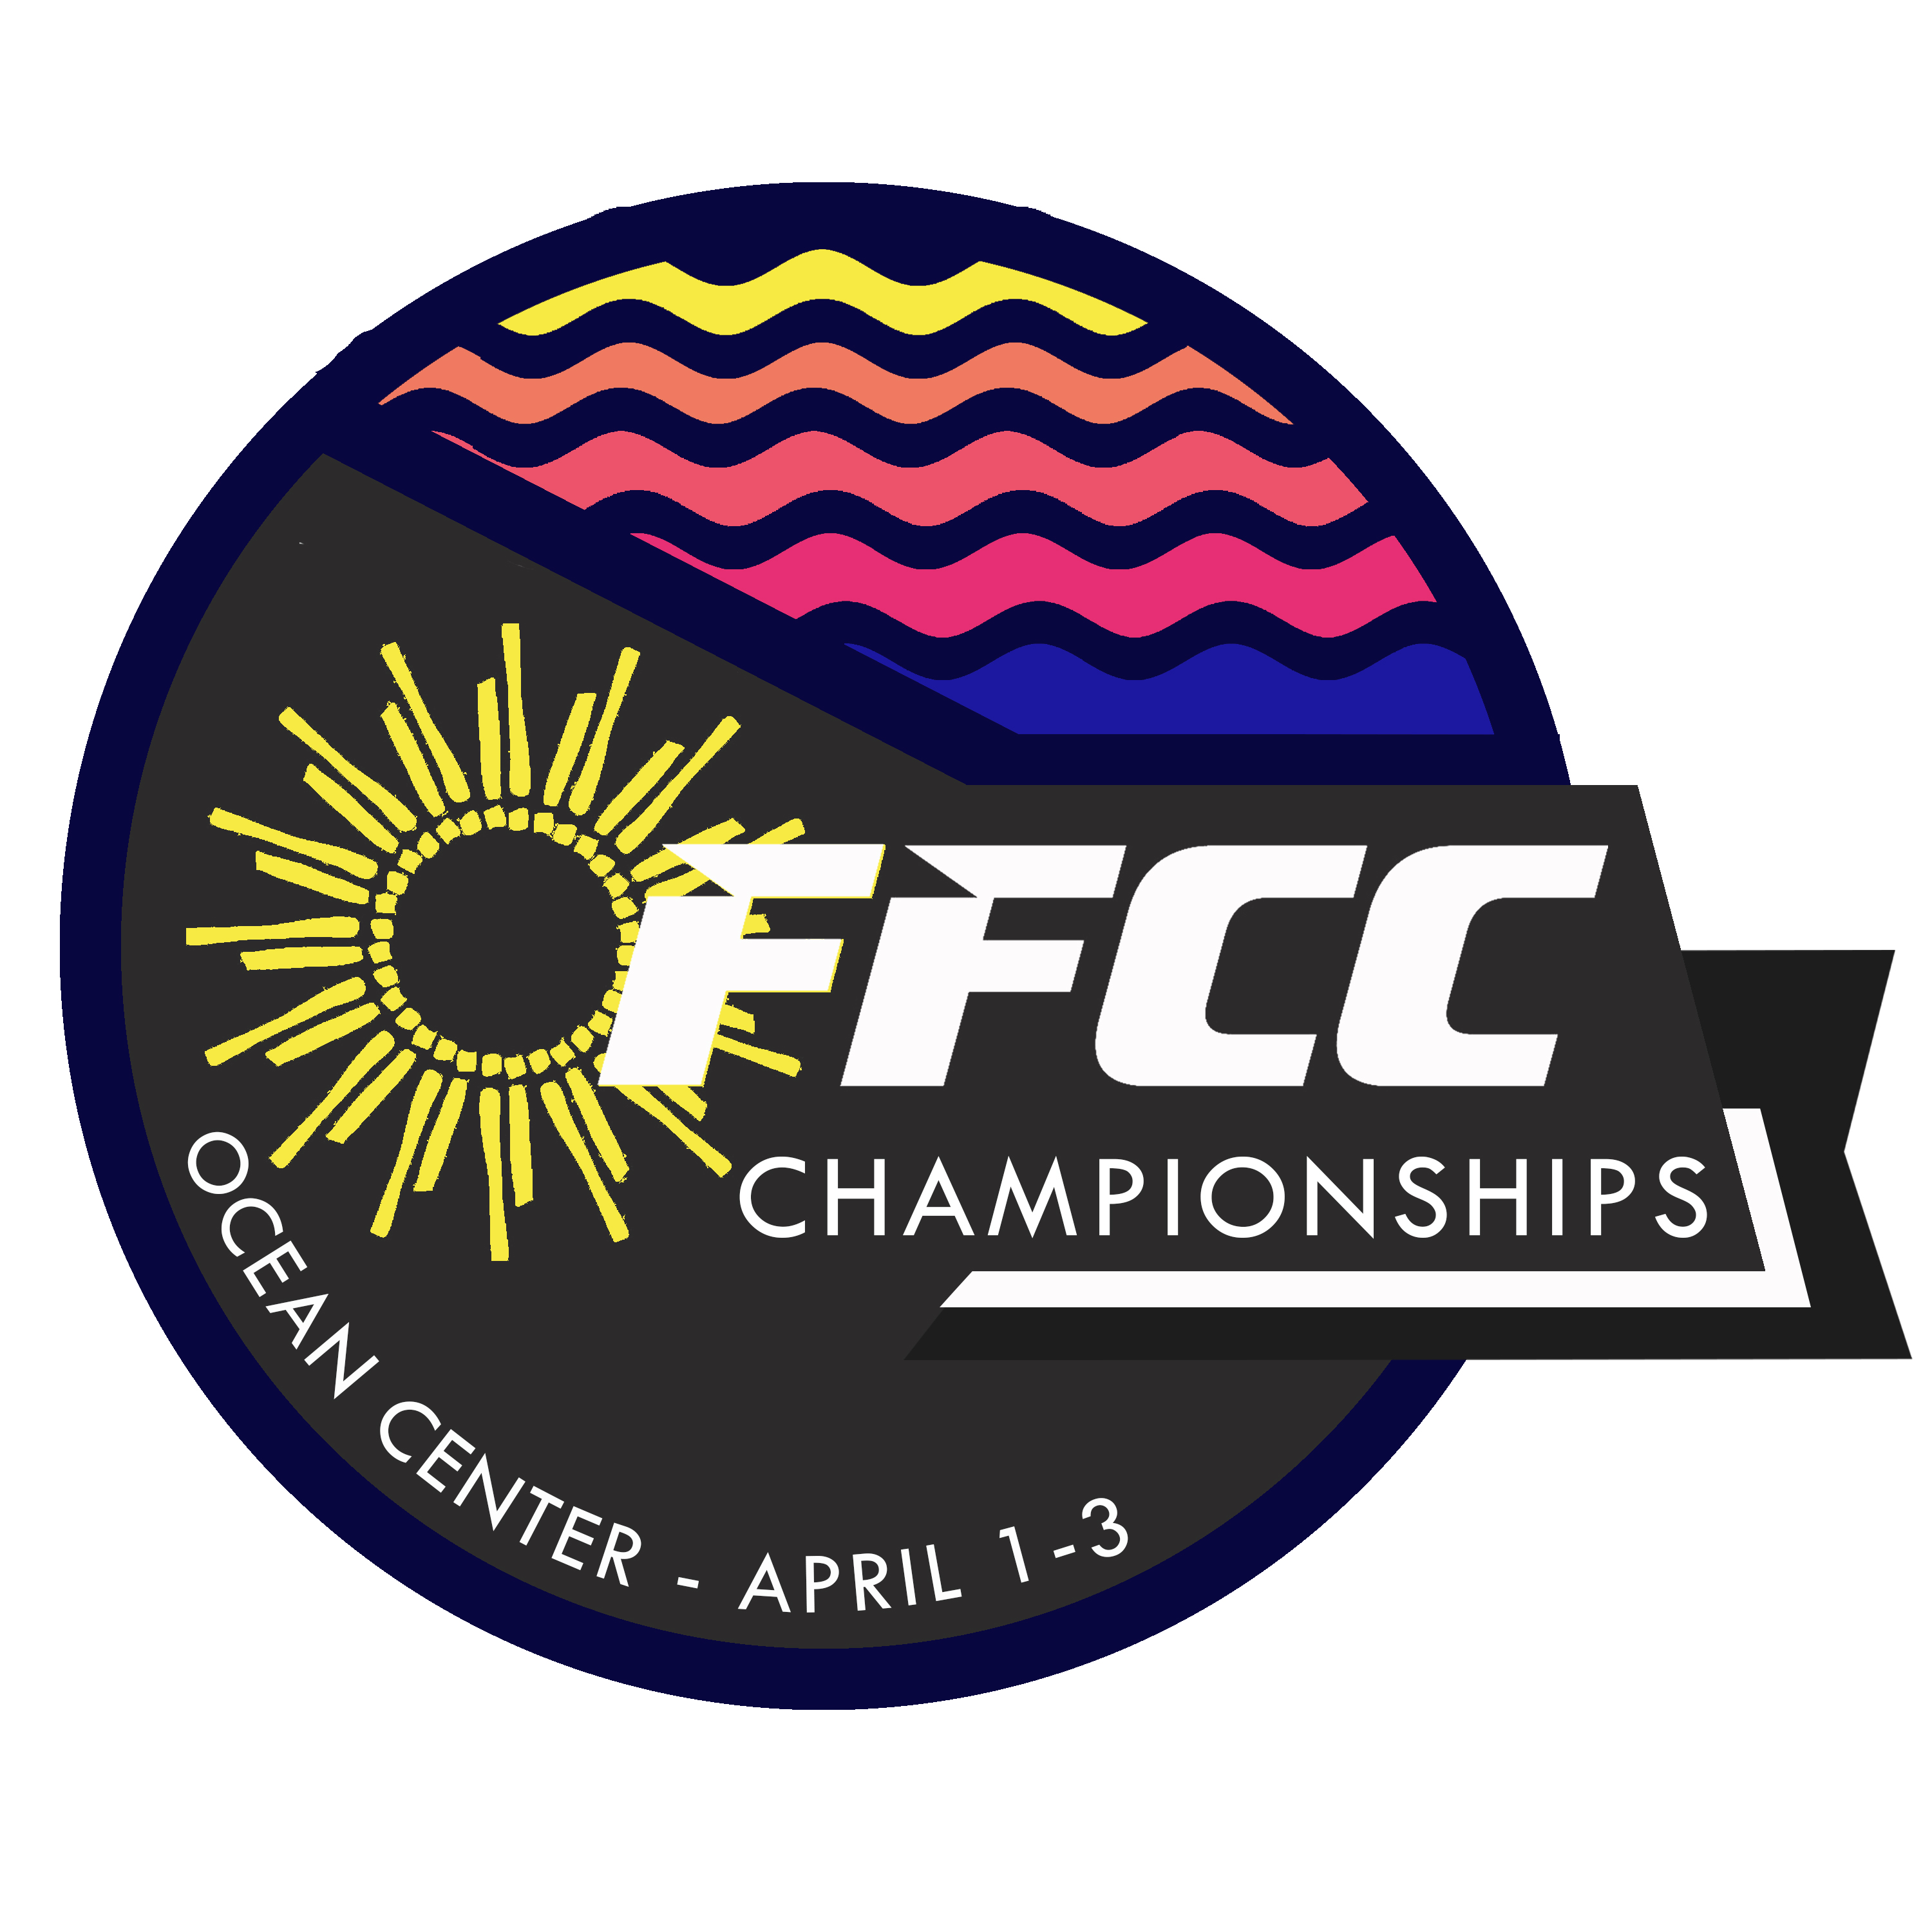 FFCC 2016 Champs Patch